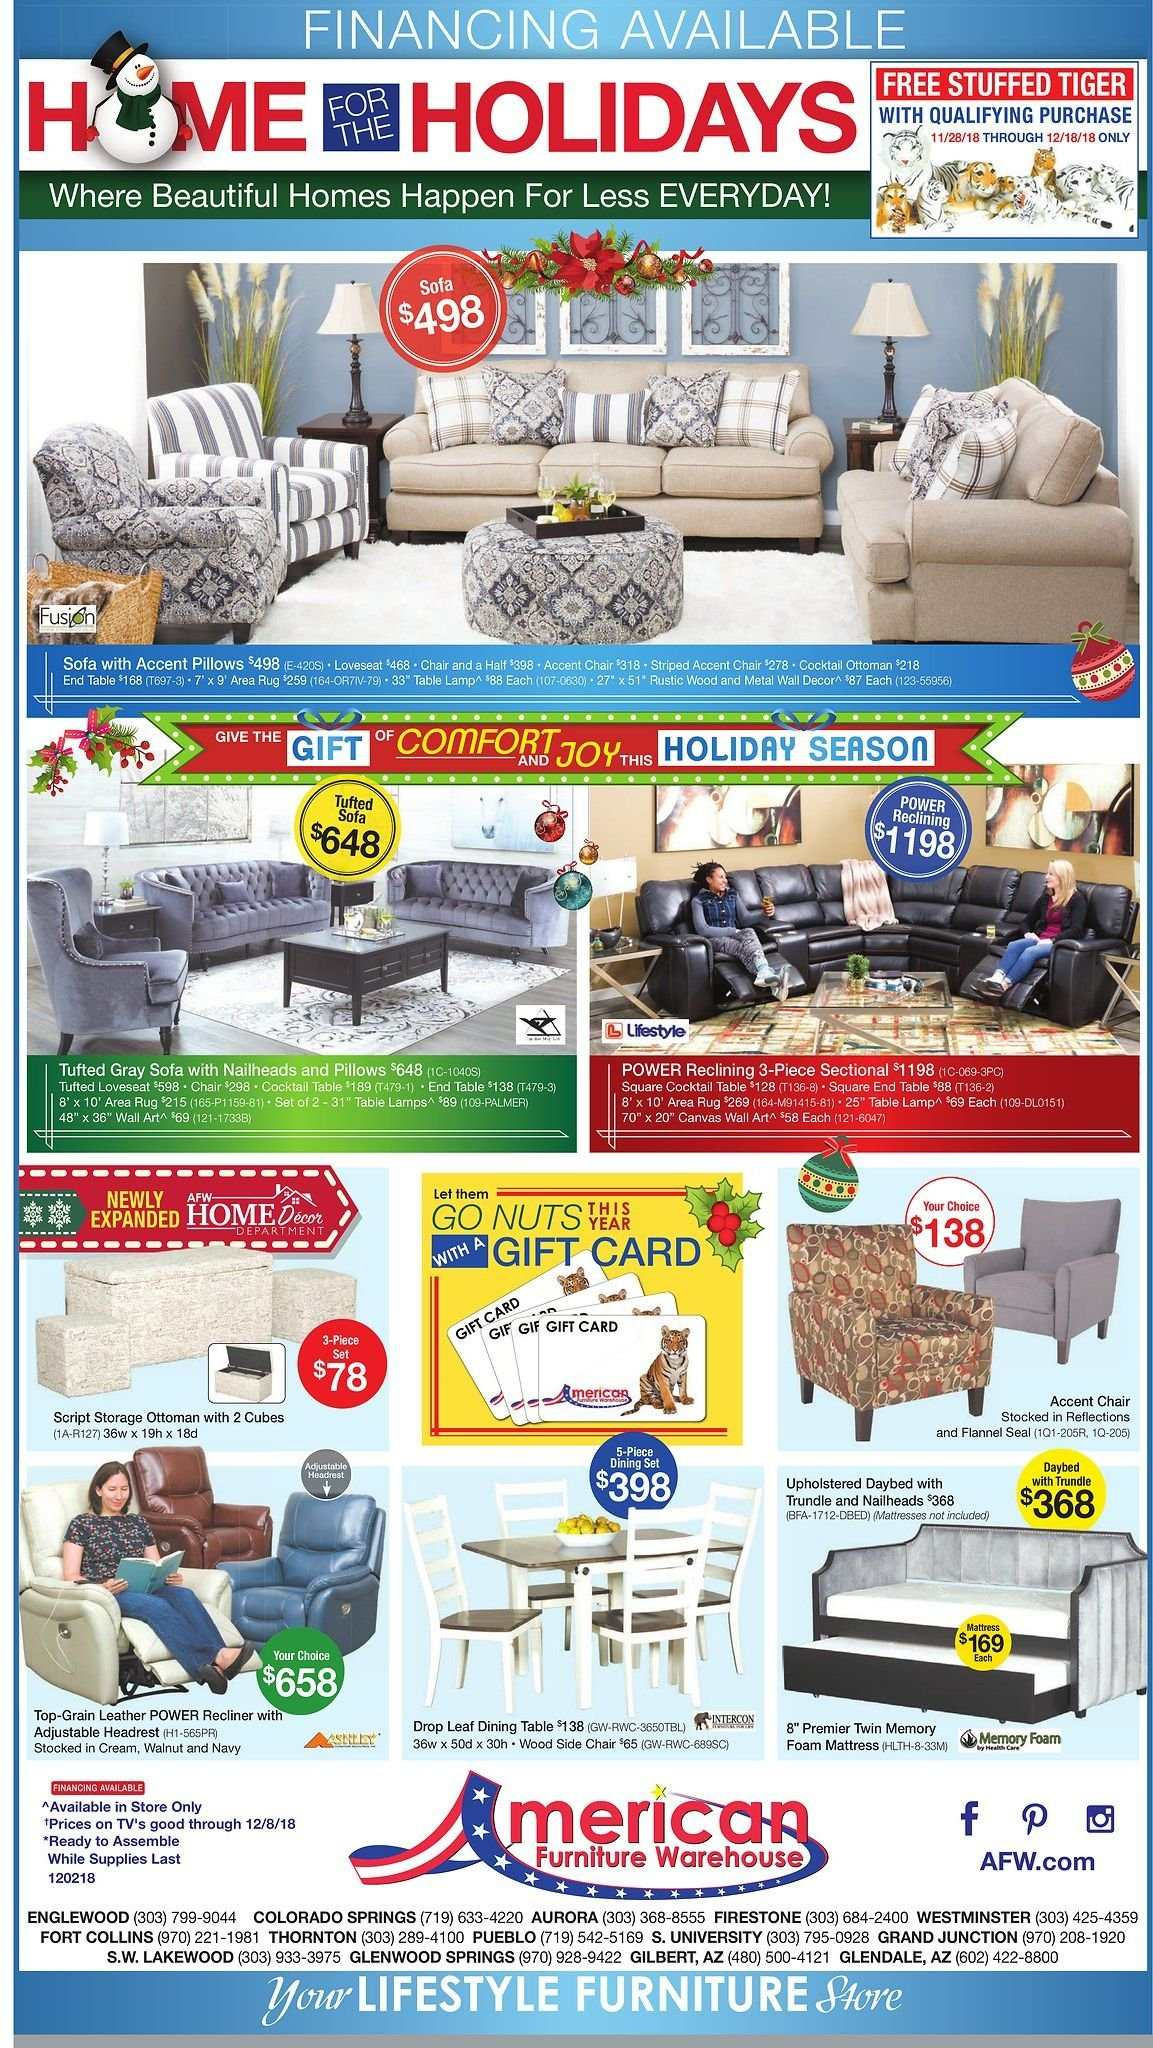 American Furniture Warehouse Flyer  - 12.02.2018 - 12.08.2018. Page 1.